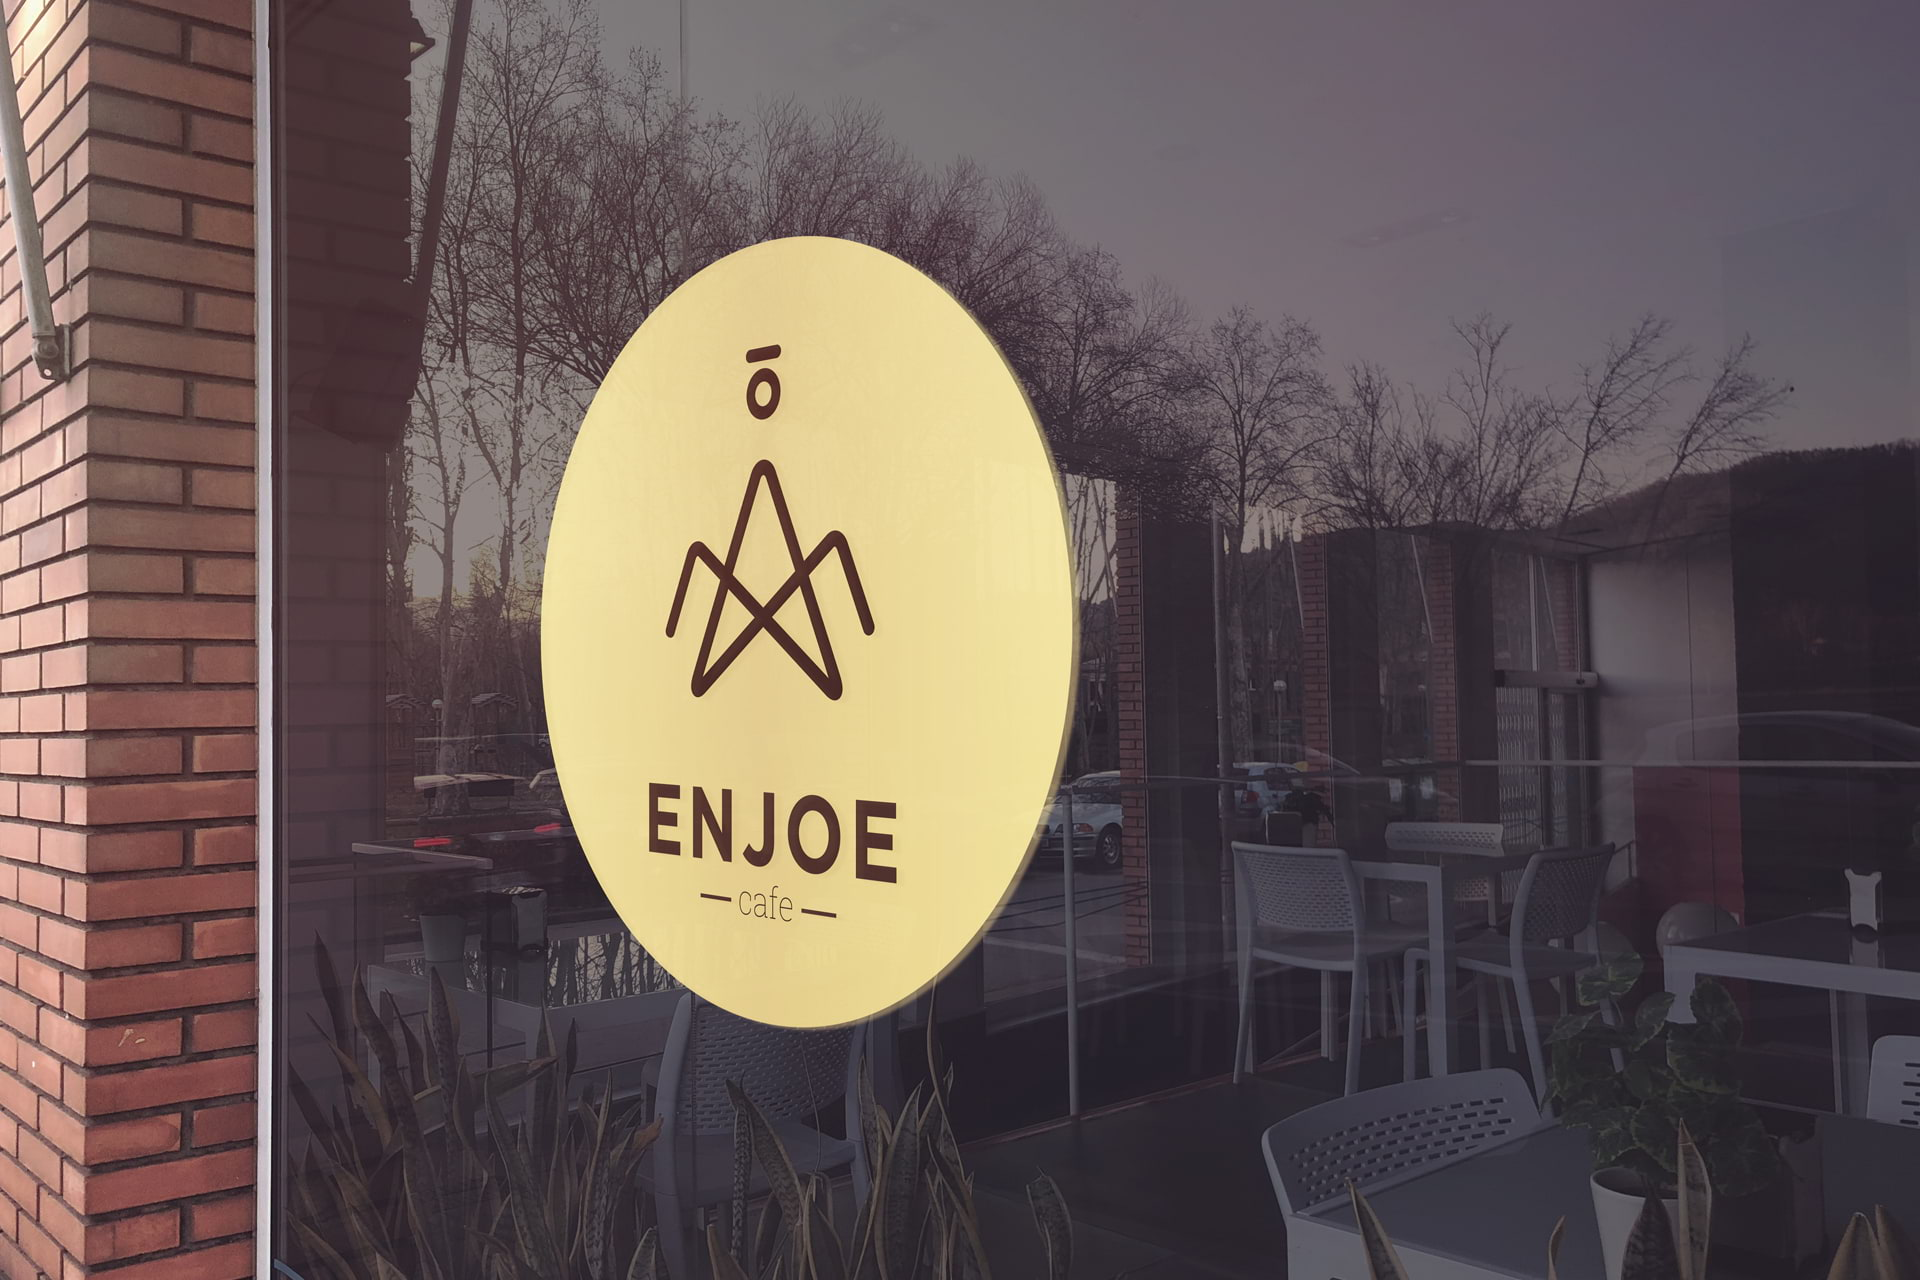 enjoe cafe